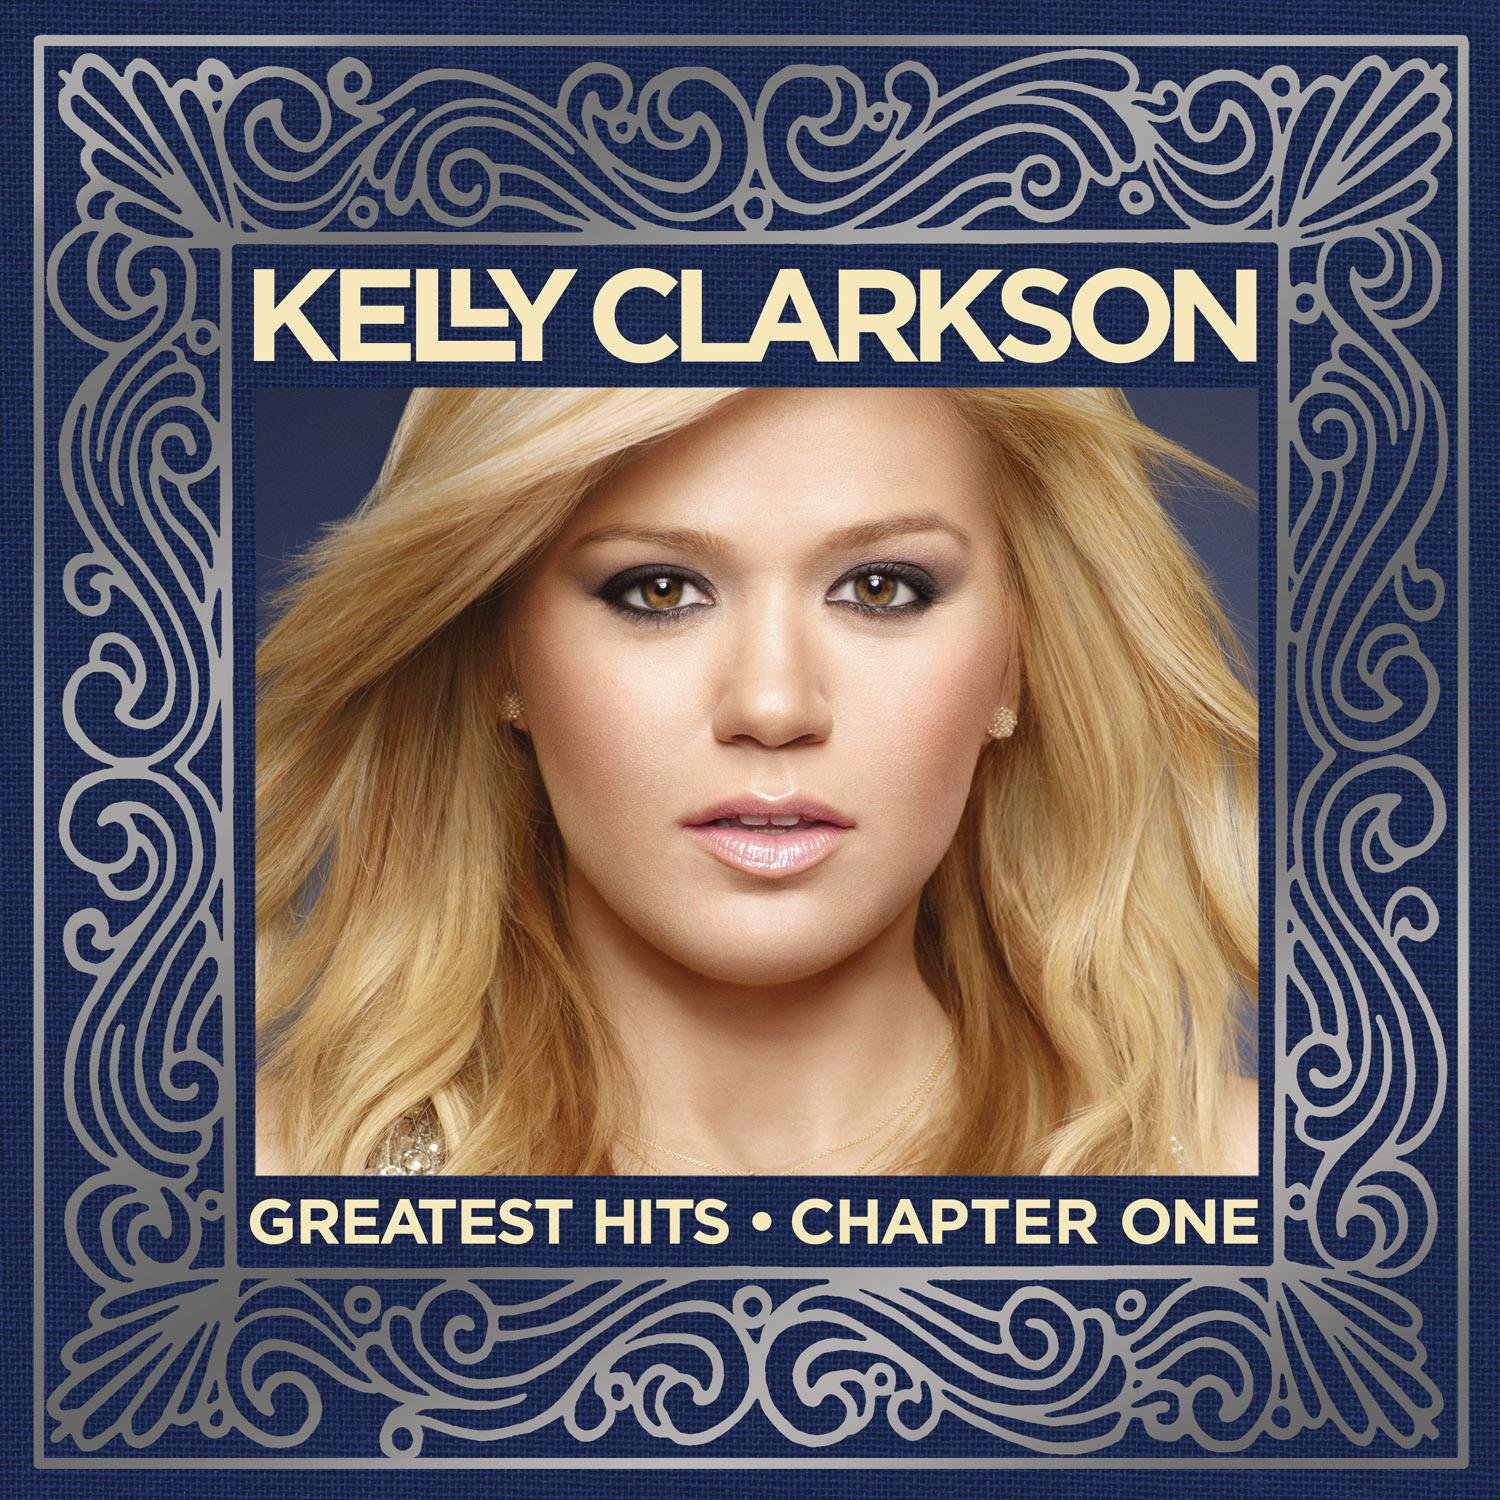 Kelly Clarkson - Greatest Hits - Chapter One - Amazon.com Music